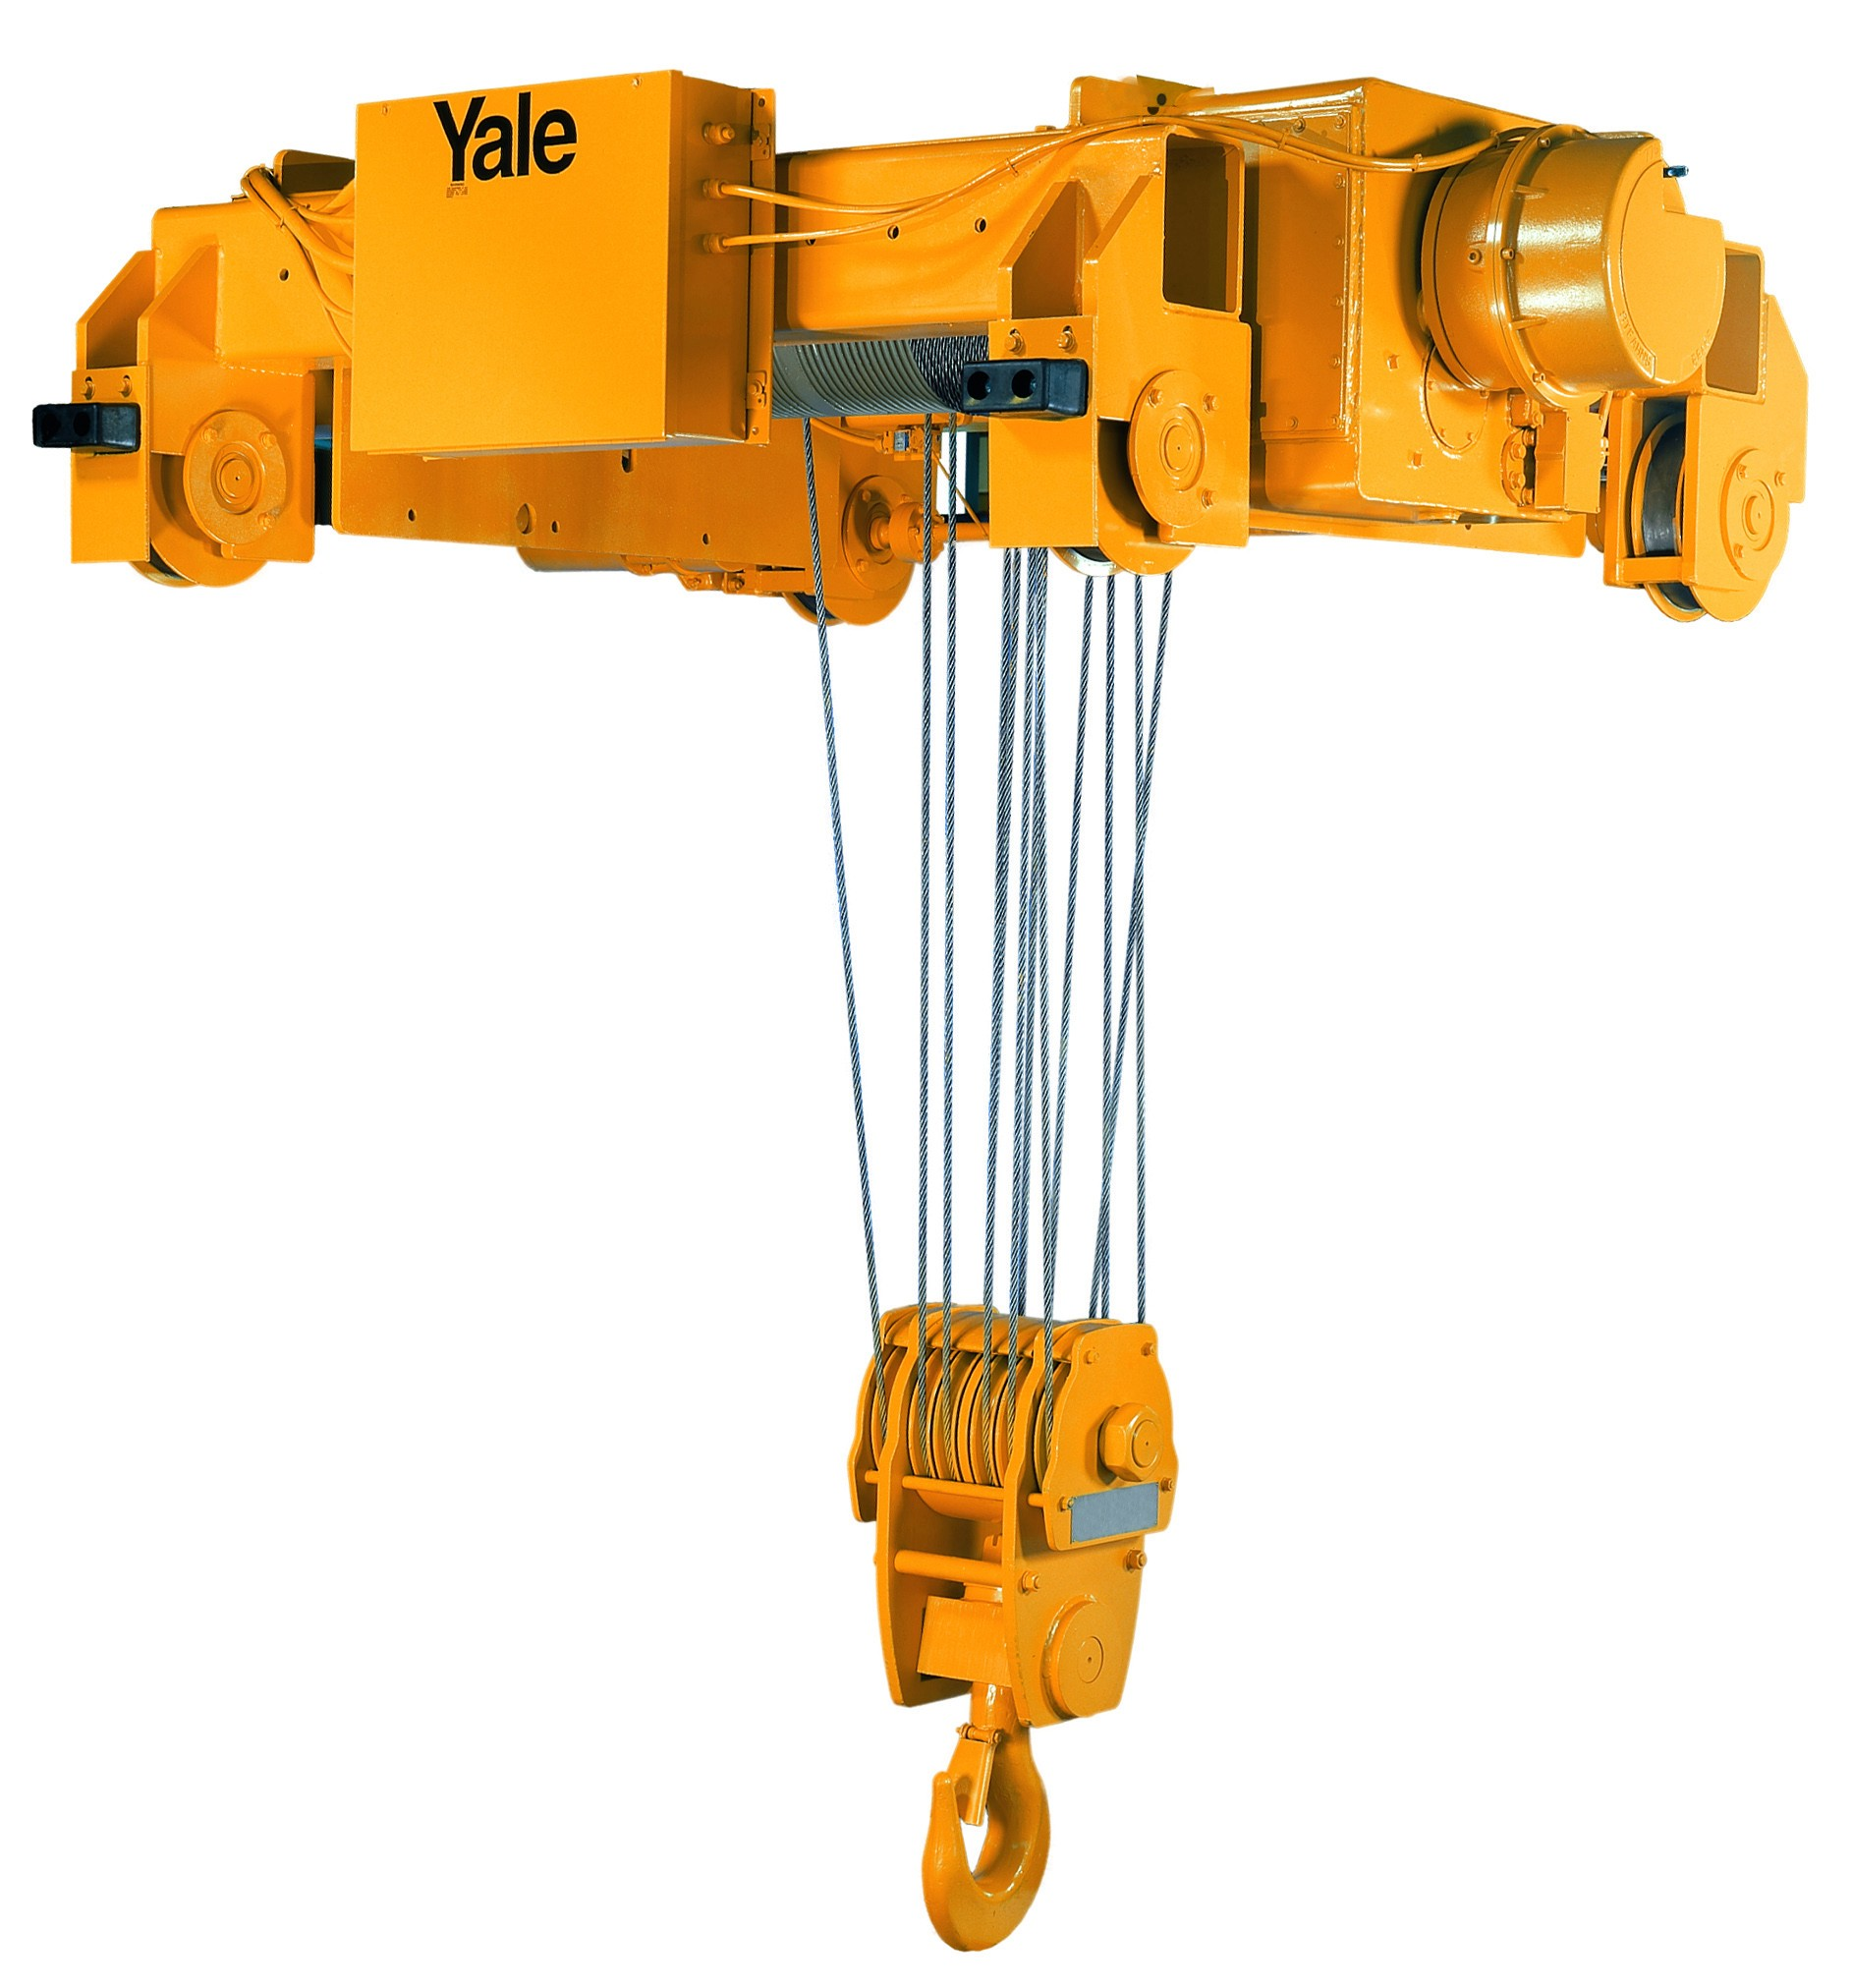 YALE - Cable King 10 Ton Electric Wire Rope Hoist (46fpm & 150' Lift Double Reeve)